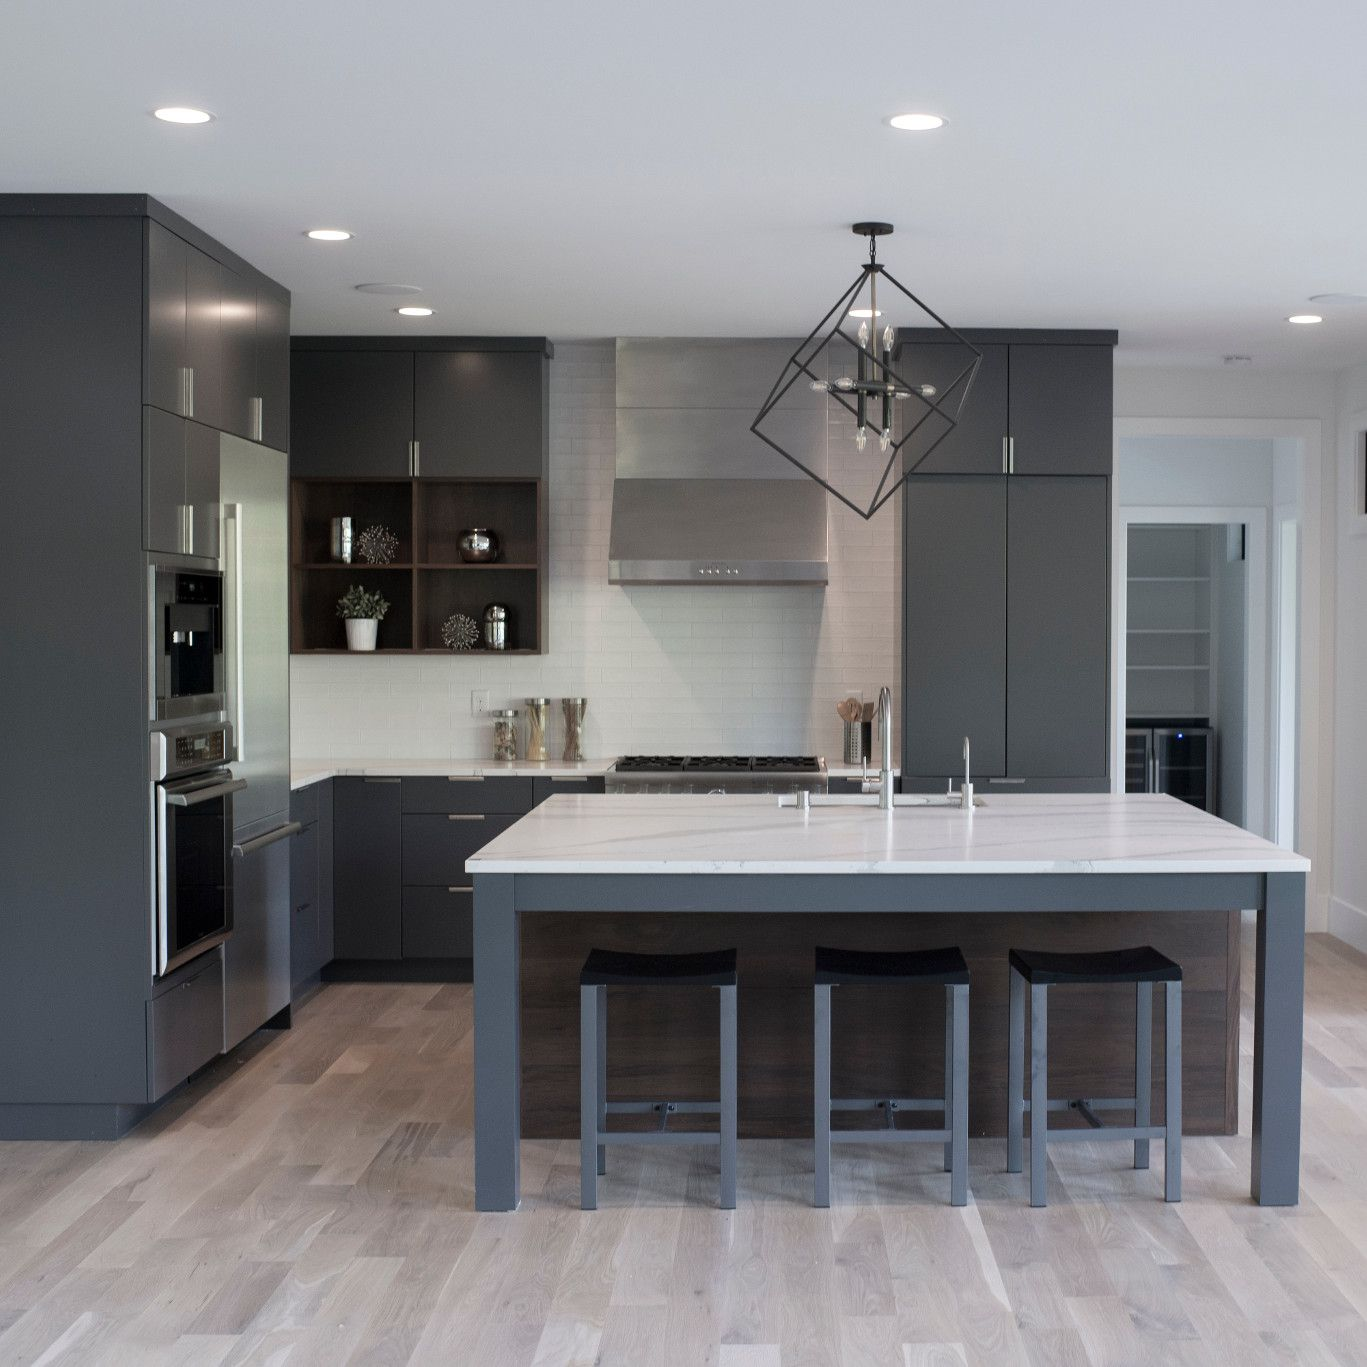 A picture containing indoor, wall, kitchen, ceiling  Description automatically generated